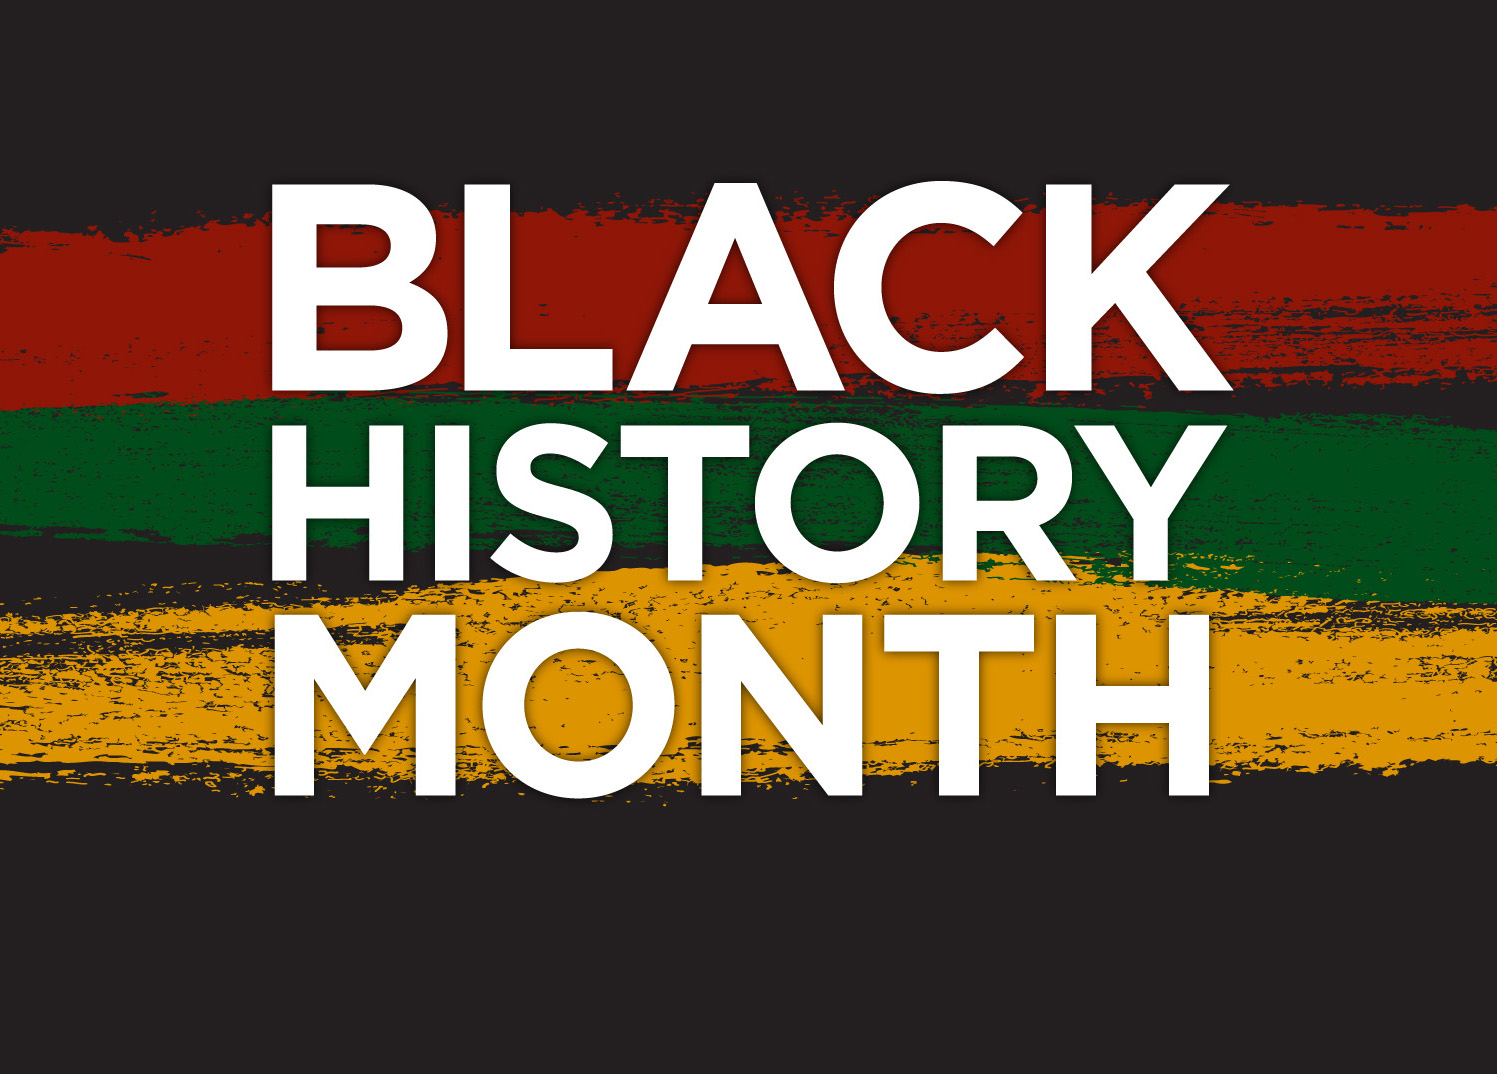 Celebrated Black History Month All February Long